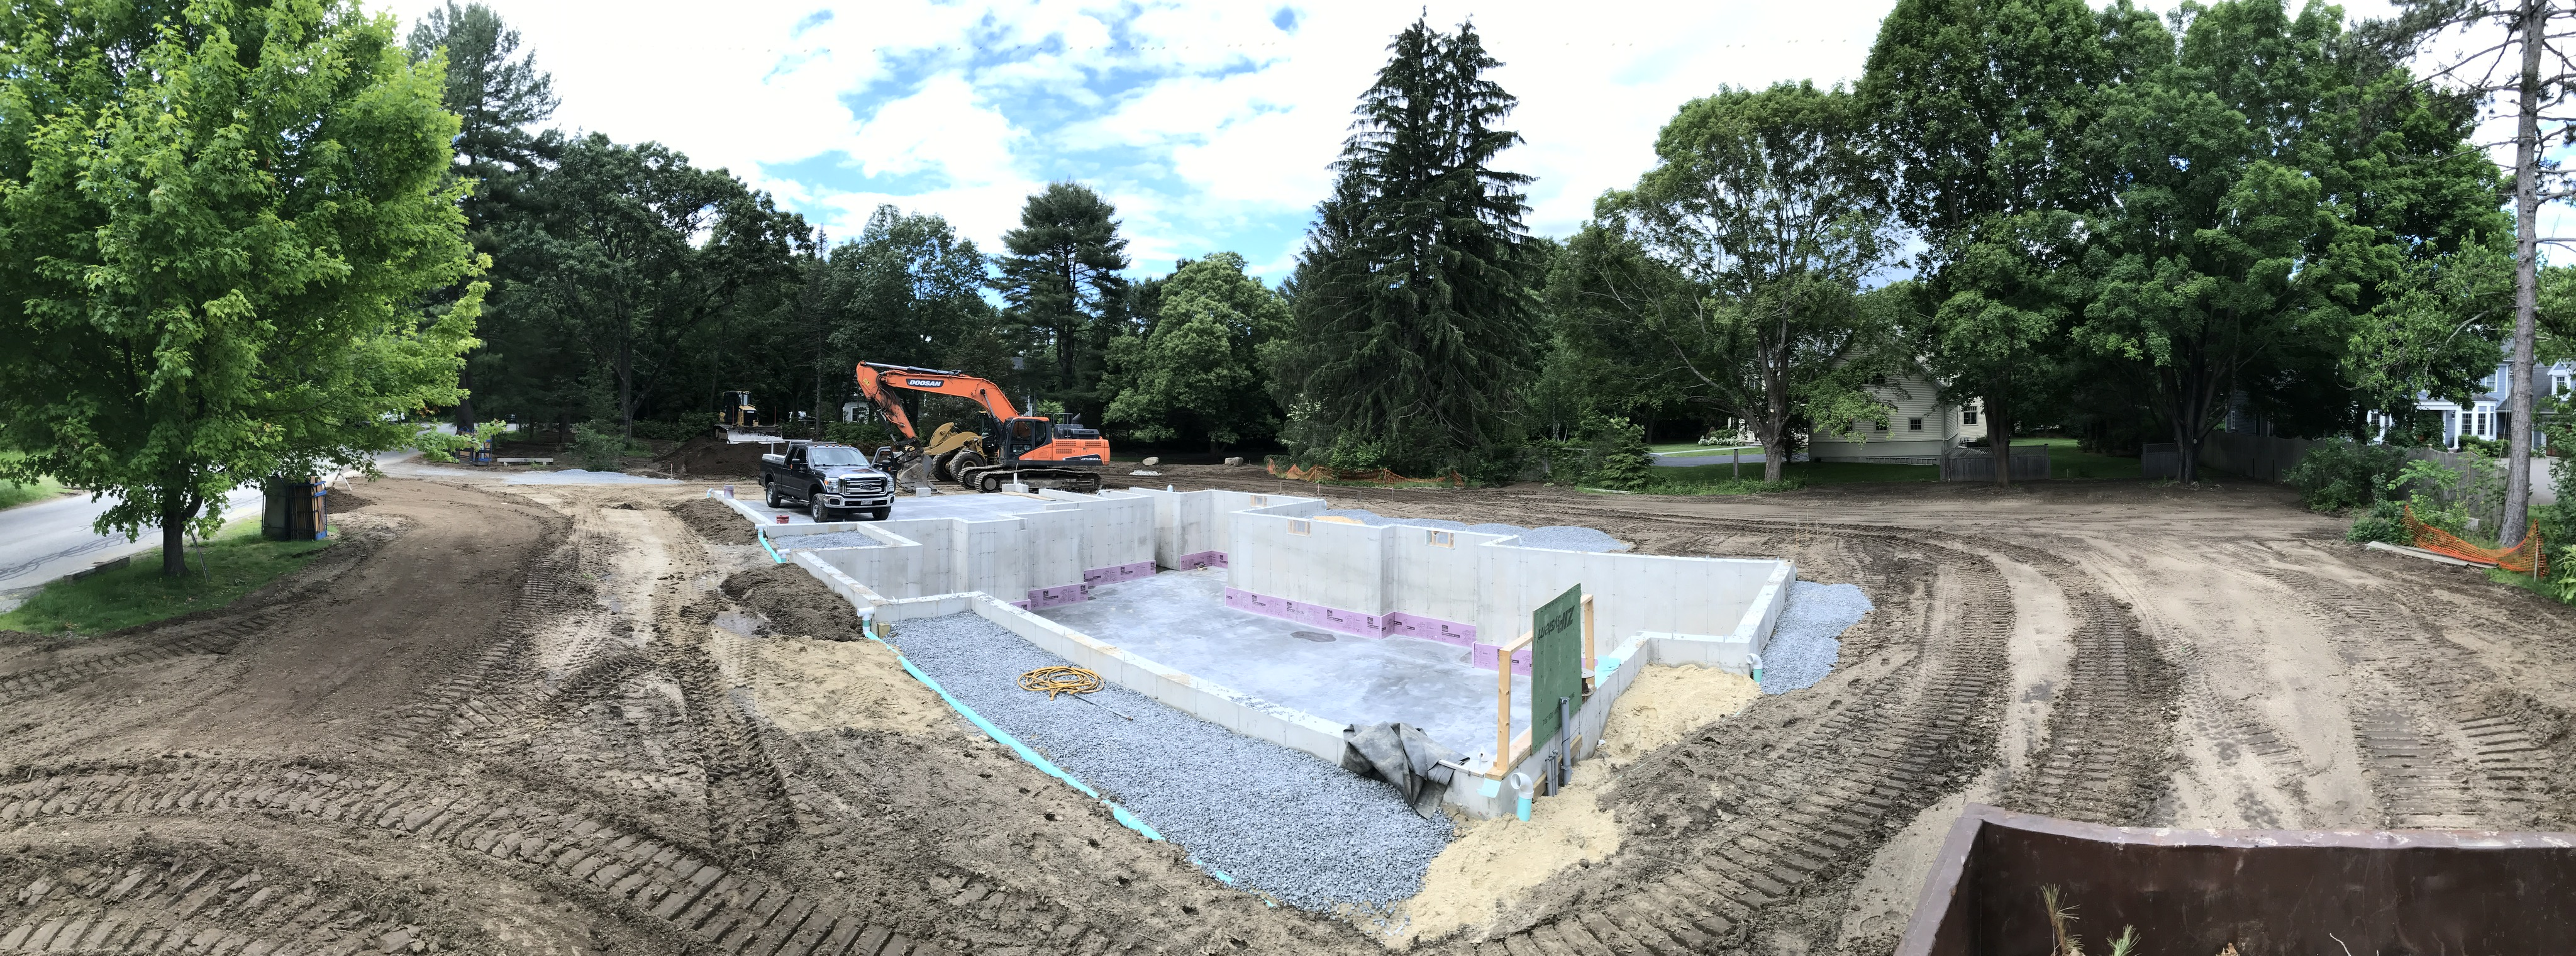 Work in progress concreting the foundation of a property